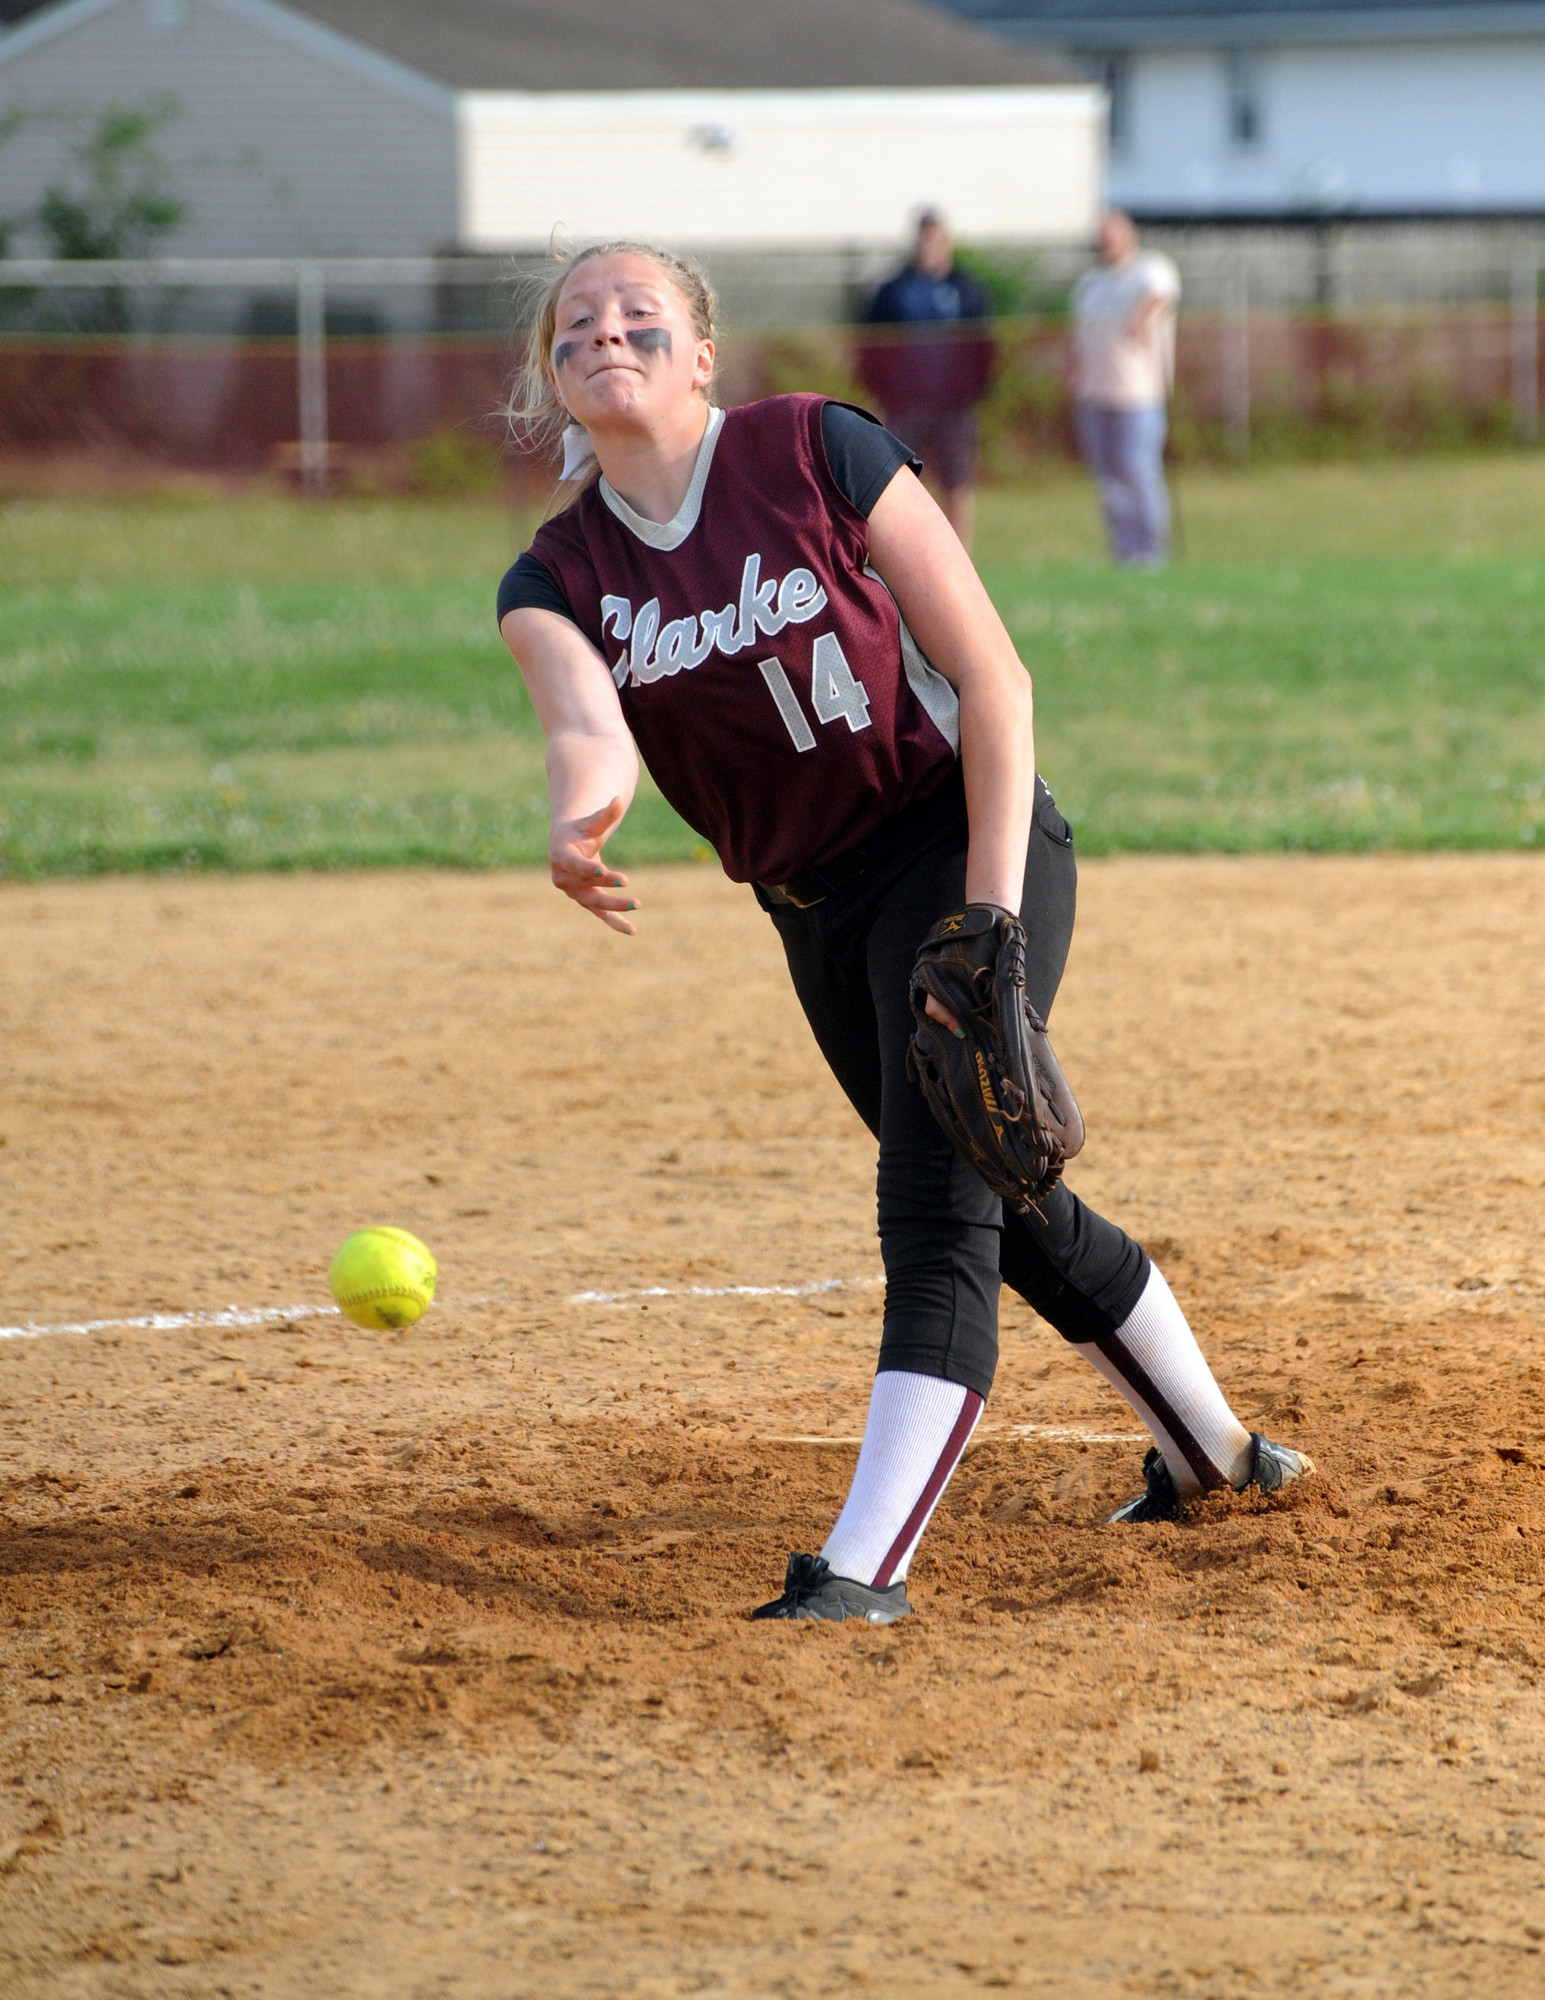 Pitcher Sarah Cornell tossed a two-hitter and struck out 16 in Clarke's 3-0 win over Floral Park in a Nassau Class A playoff game on May 10.